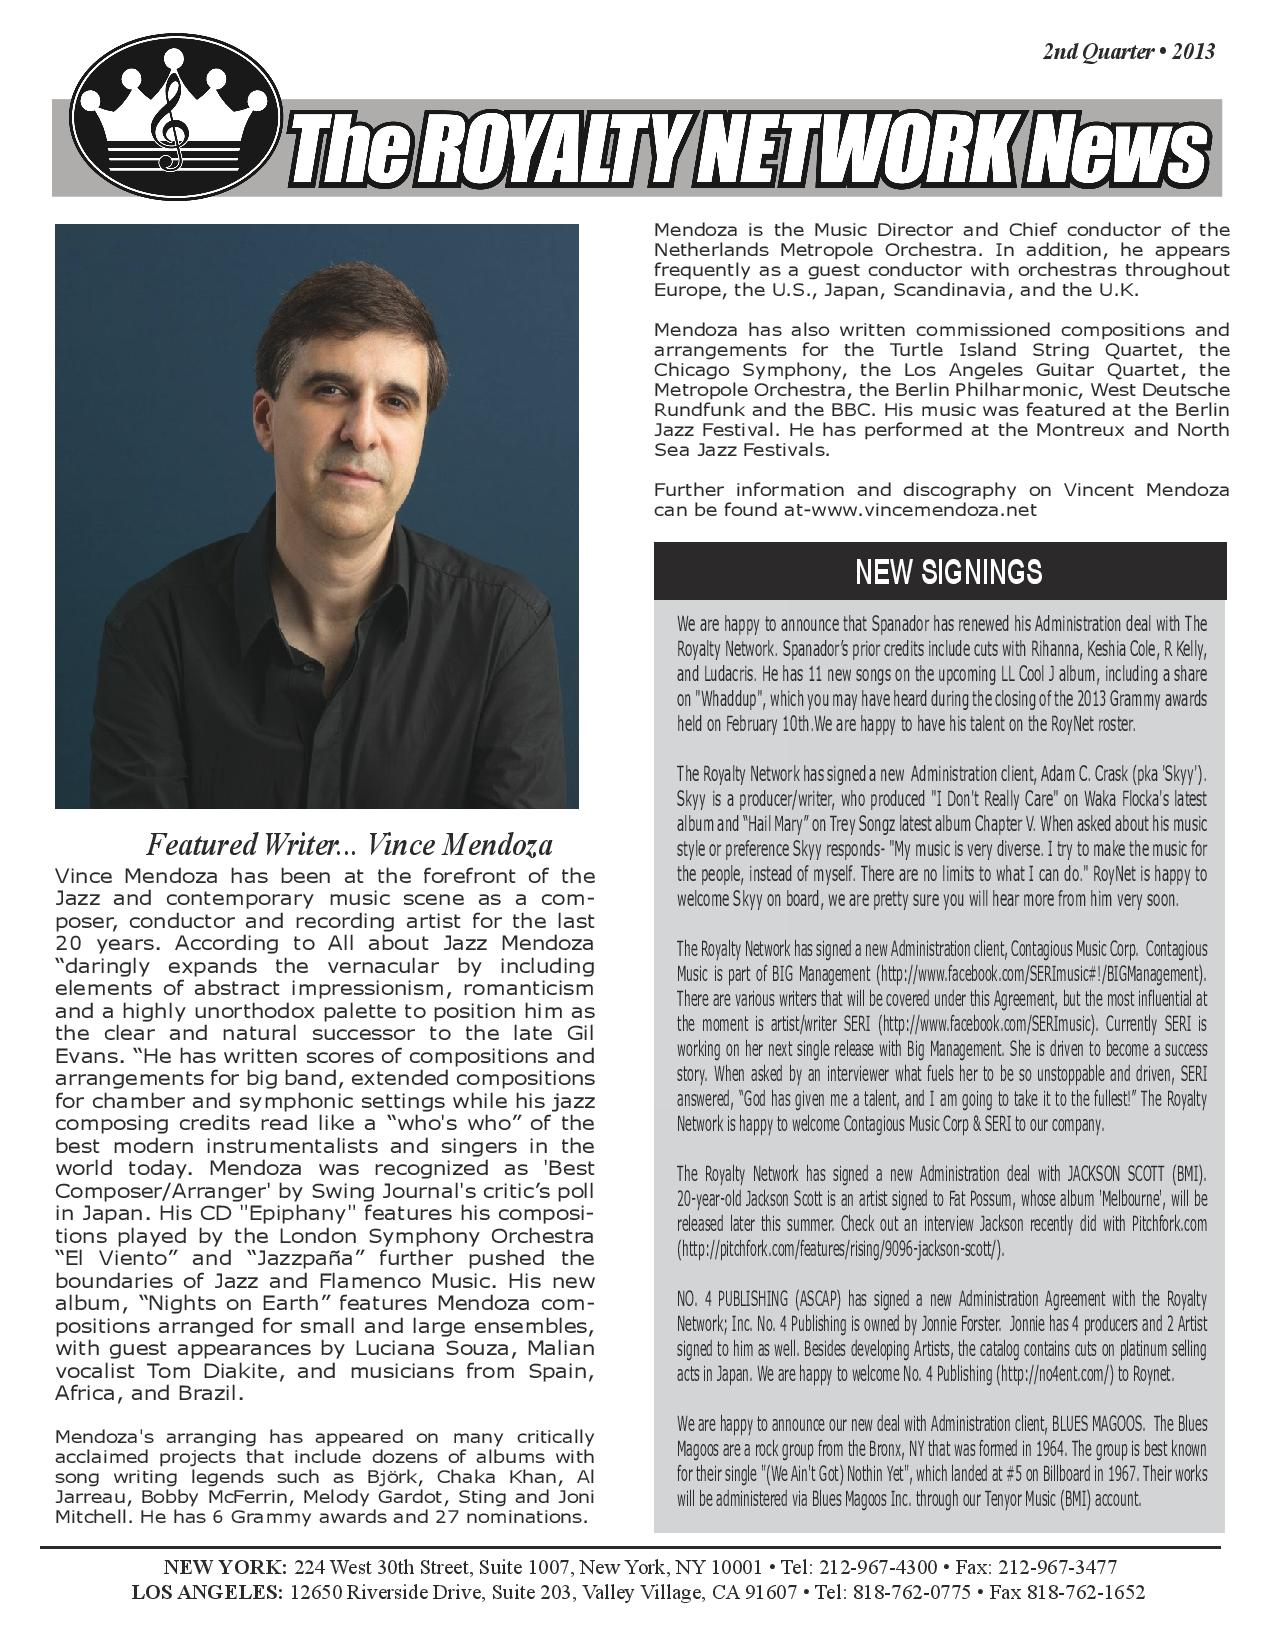 2nd Quarter 2013 Edition of the Royalty Newtork News